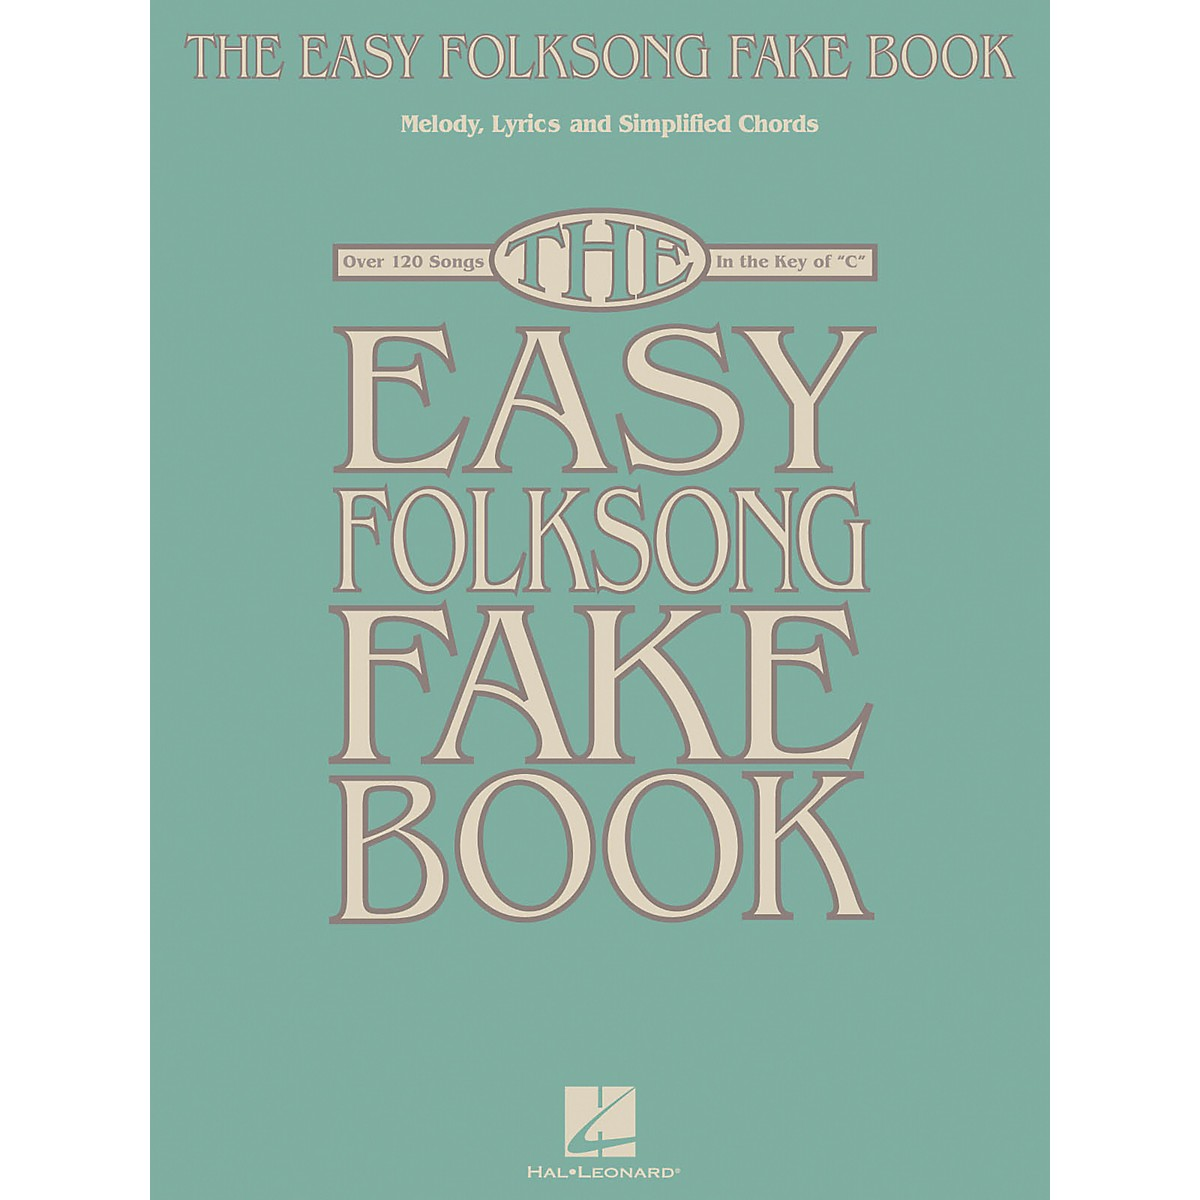 Hal Leonard The Easy Folksong Fake Book - Over 120 Songs In The Key Of C